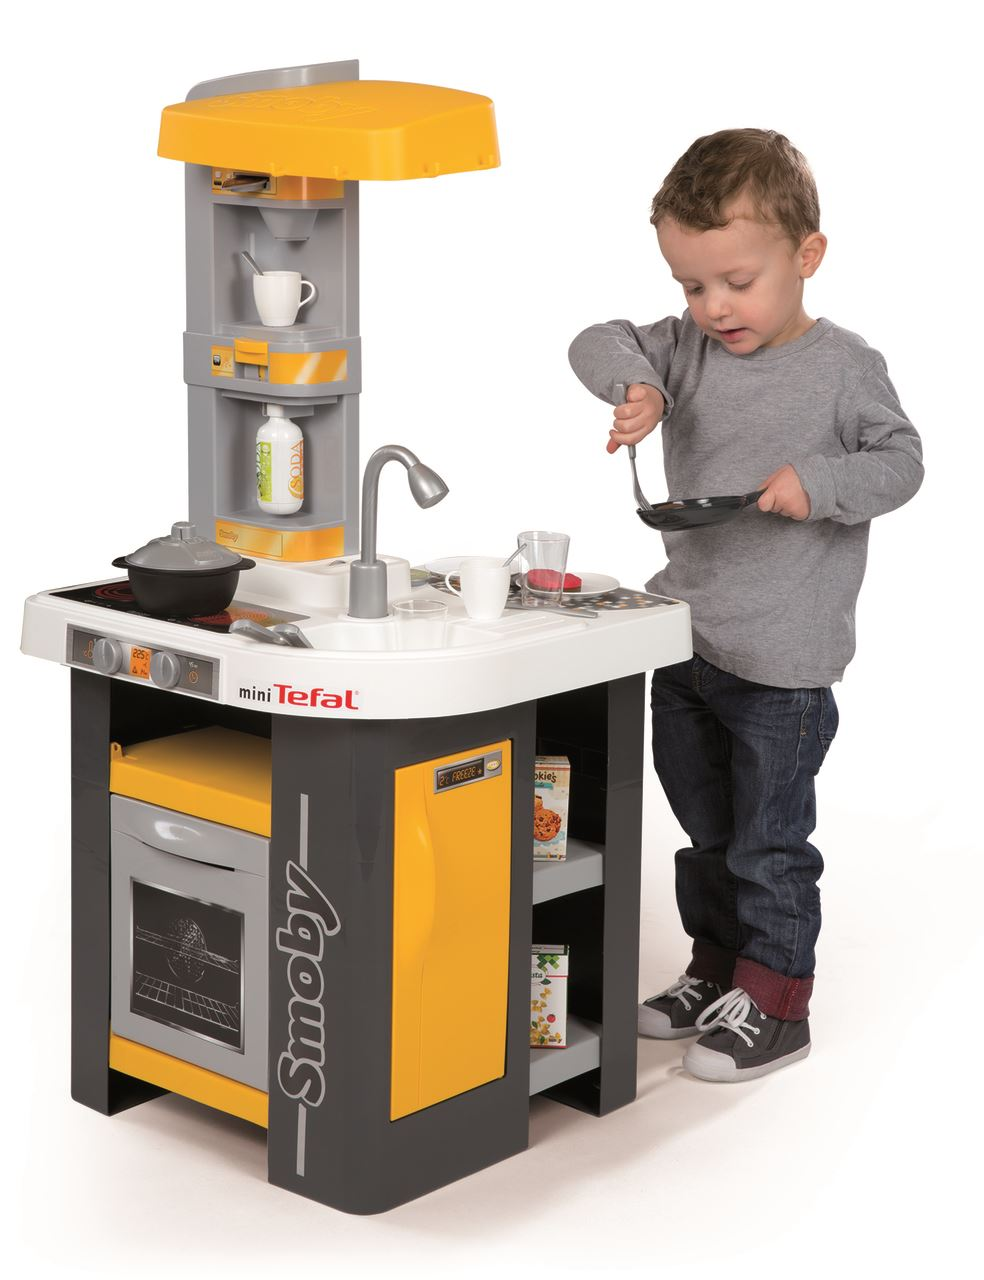 smoby kids tefal mini studio play kitchen childrens roleplay 3 years plus ebay. Black Bedroom Furniture Sets. Home Design Ideas